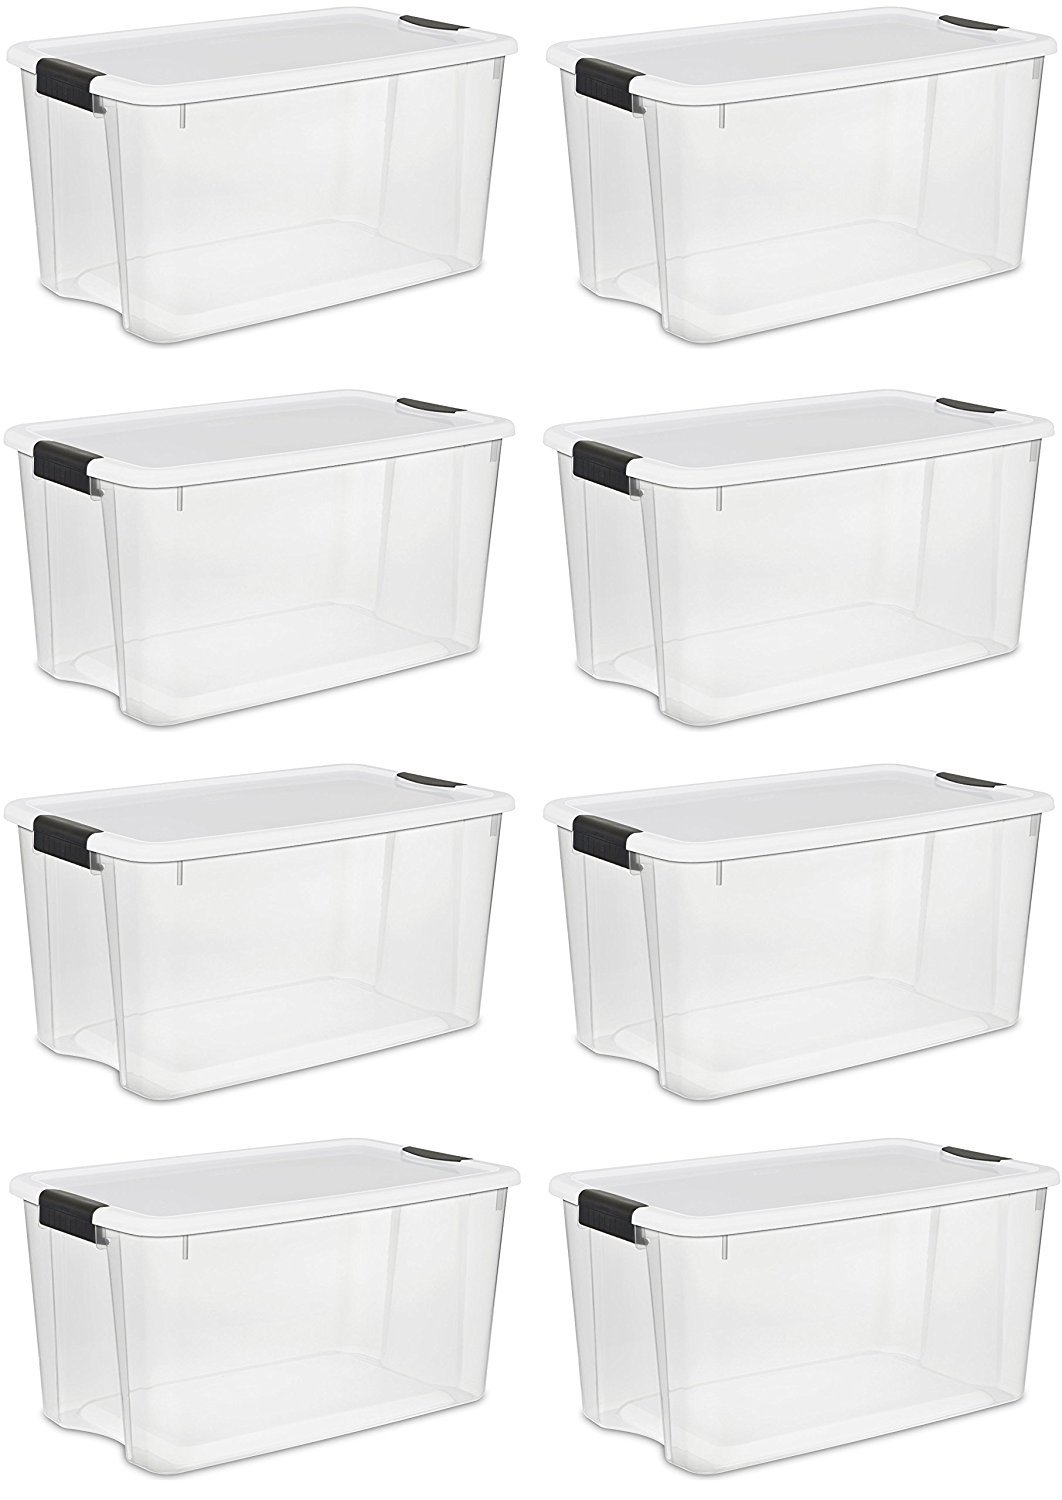 Sterilite 70 Quart/66 Liter Ultra Latch Box, Clear with a White Lid and Black Latches, 70 Quart (8-Pack) by Sterilite ''